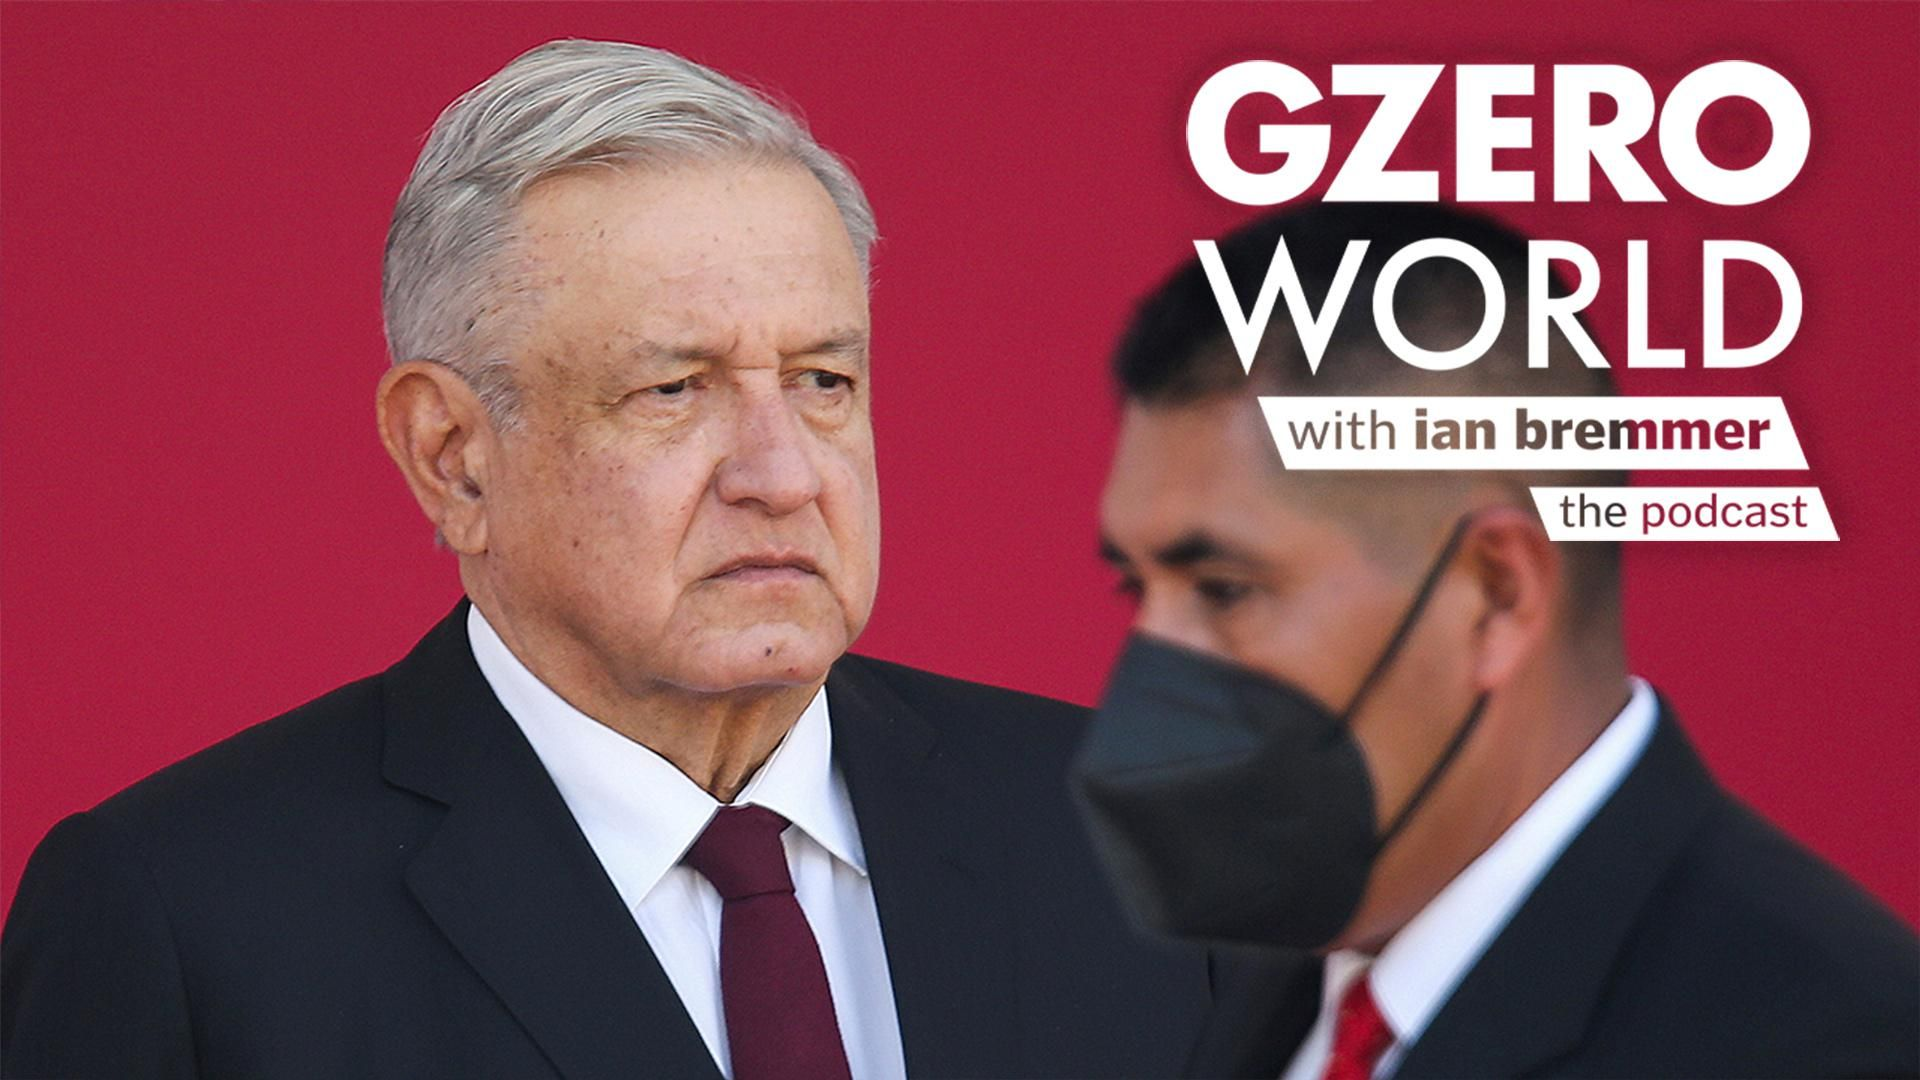 Podcast: Can AMLO Live Up to Mexico's Critical Moment? Jorge Ramos Discusses